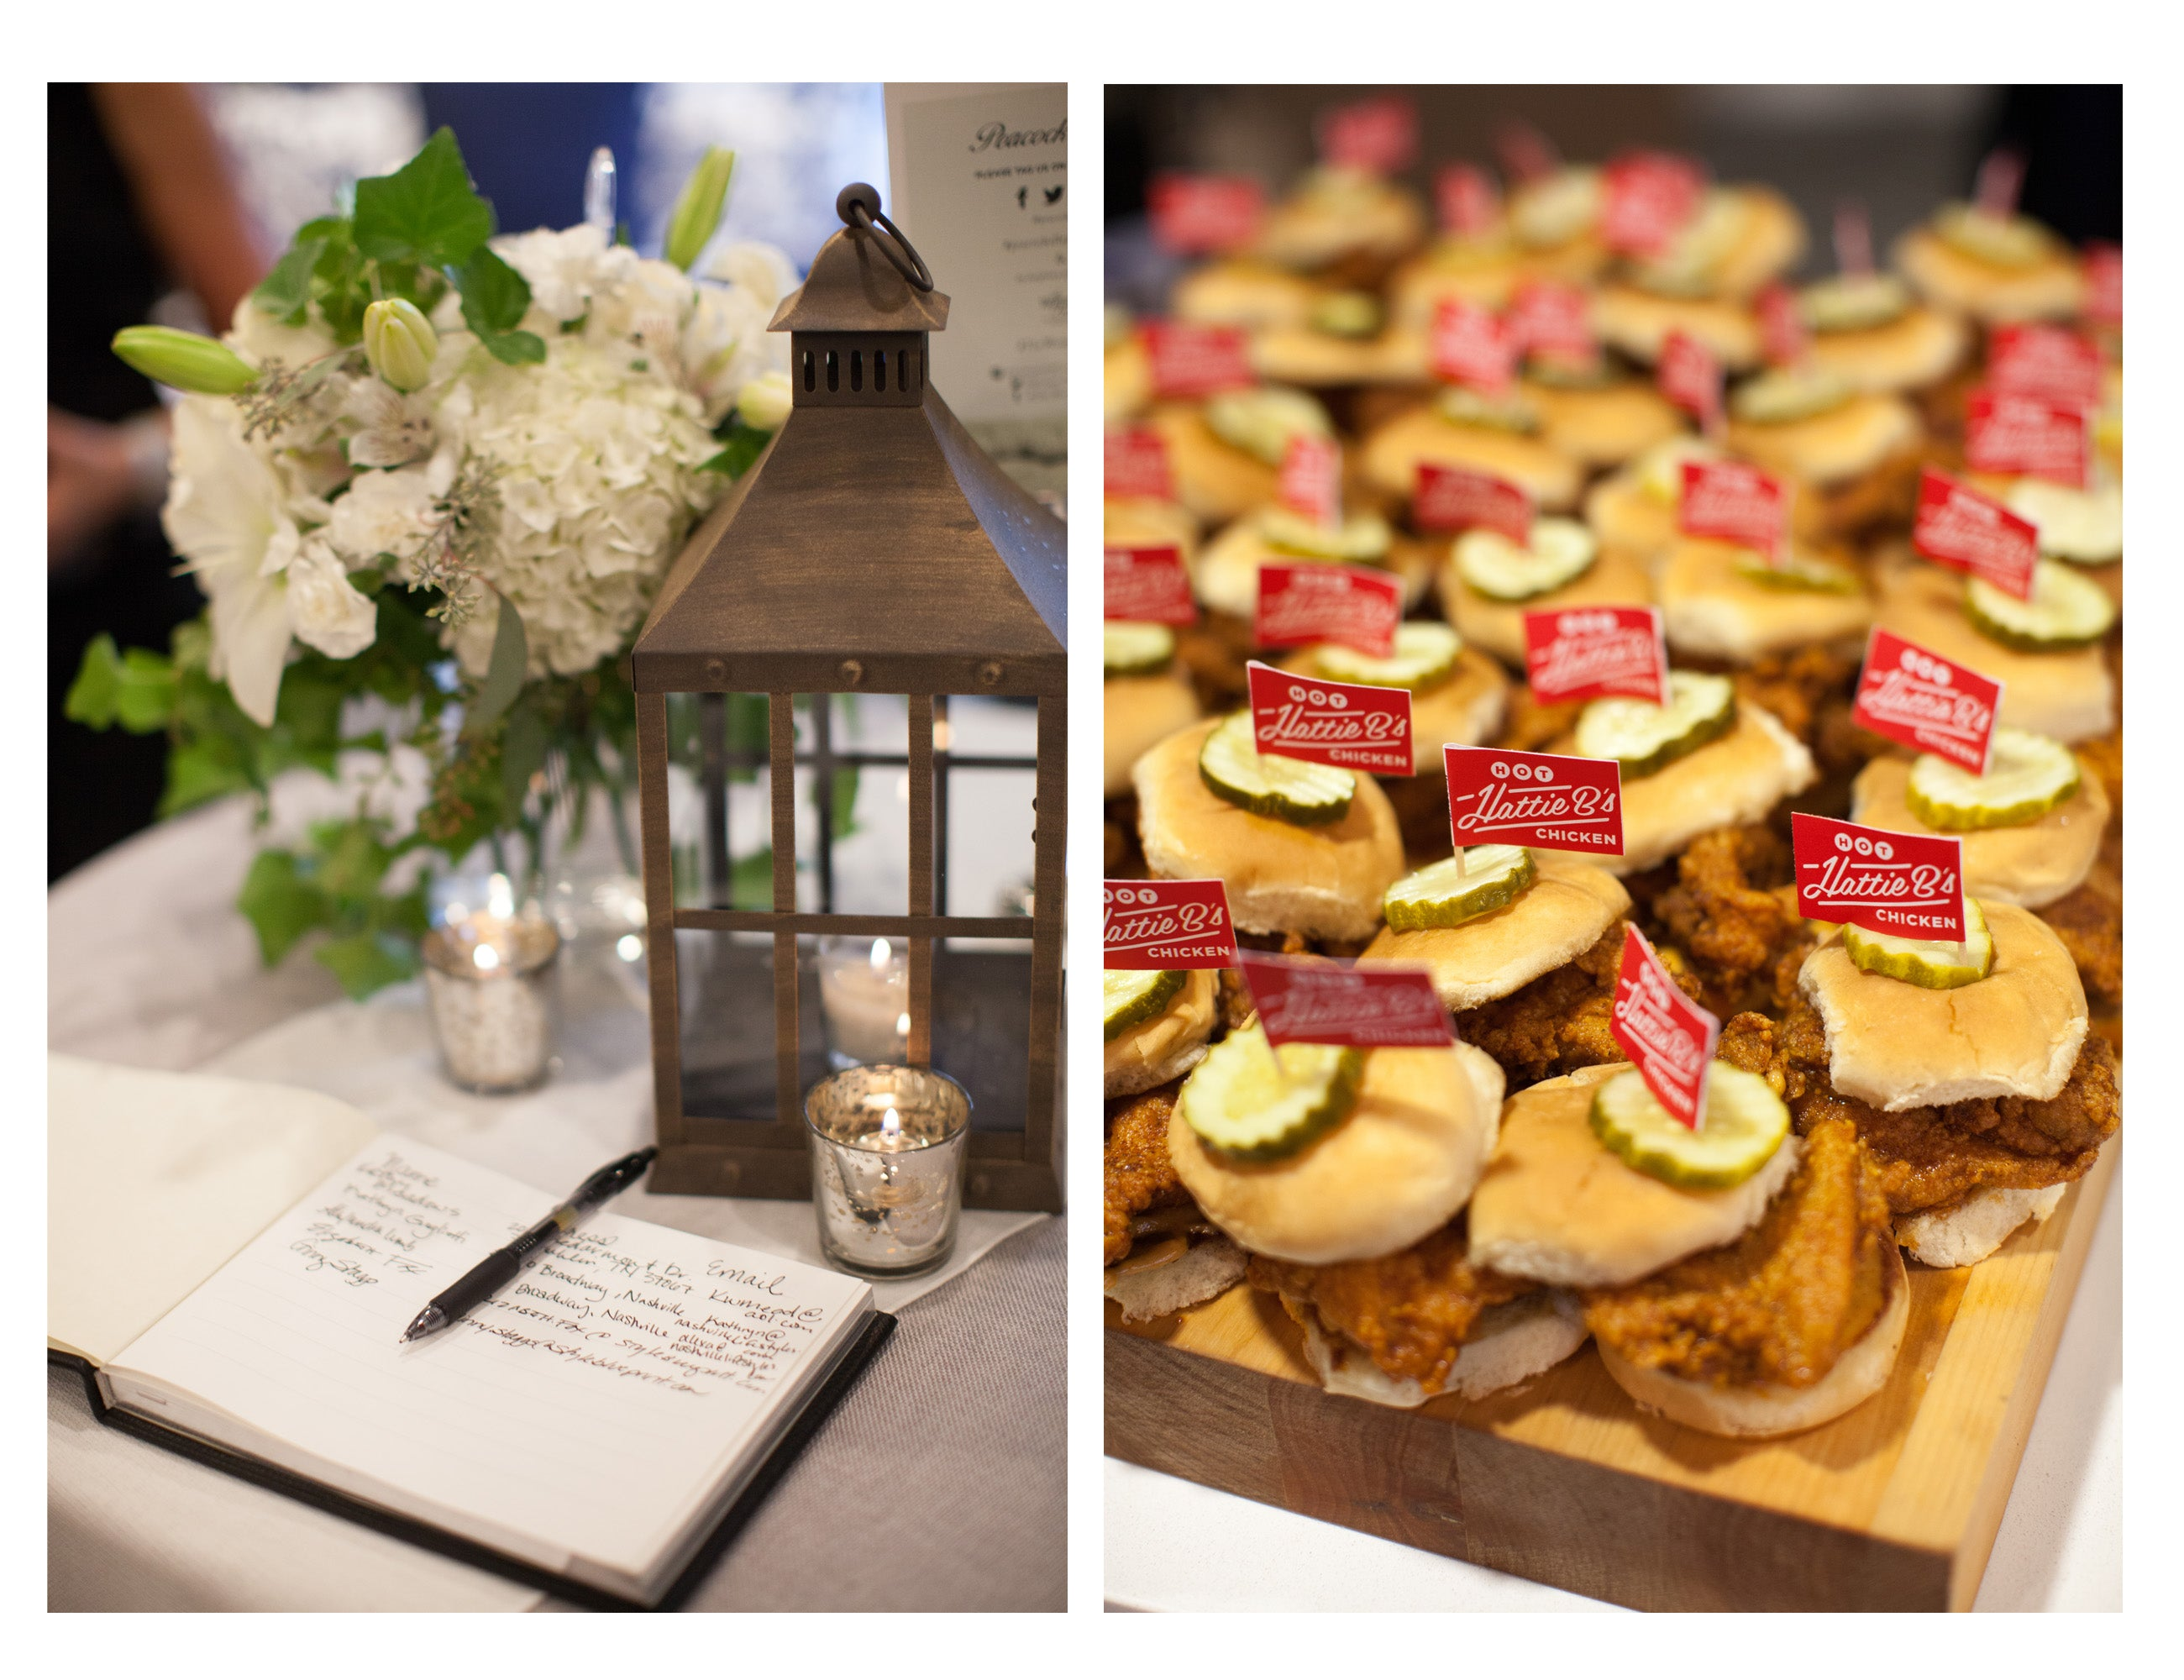 The guest book (left) and Hattie B's chicken sliders (right) at the Peacock Alley Nashville Opening